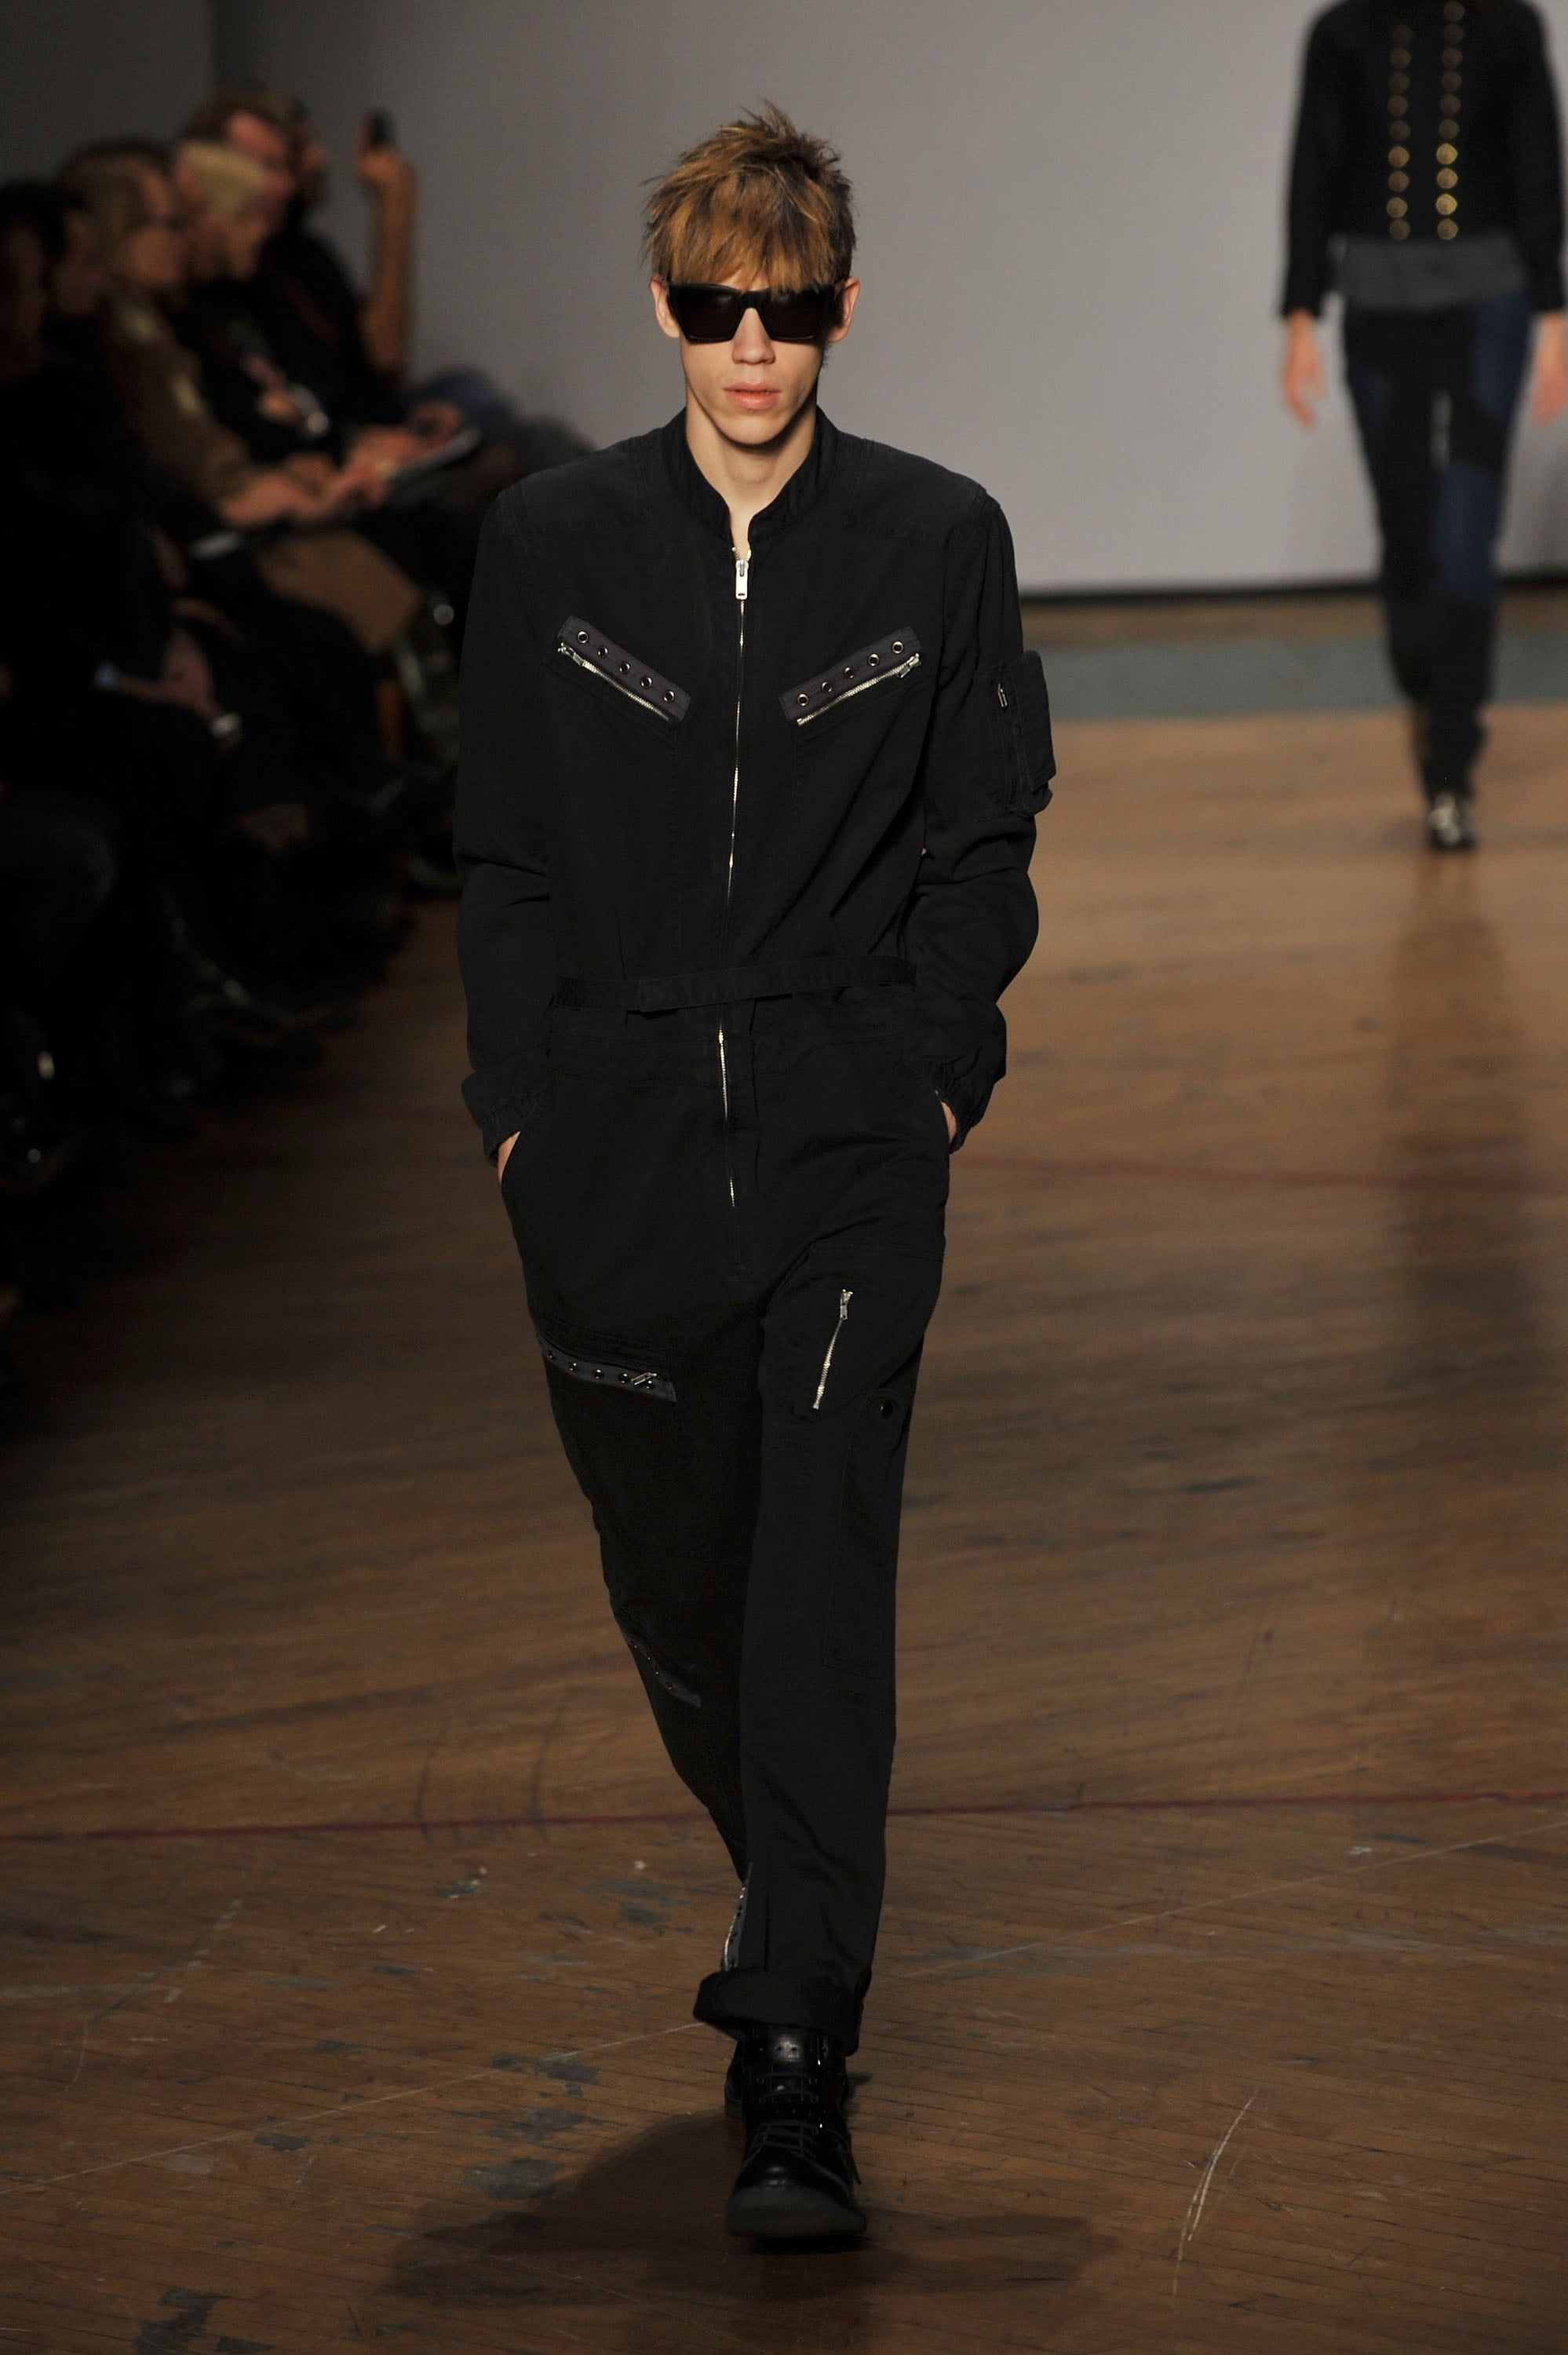 2010 Fall New York Fashion Week: Marc by Marc Jacobs